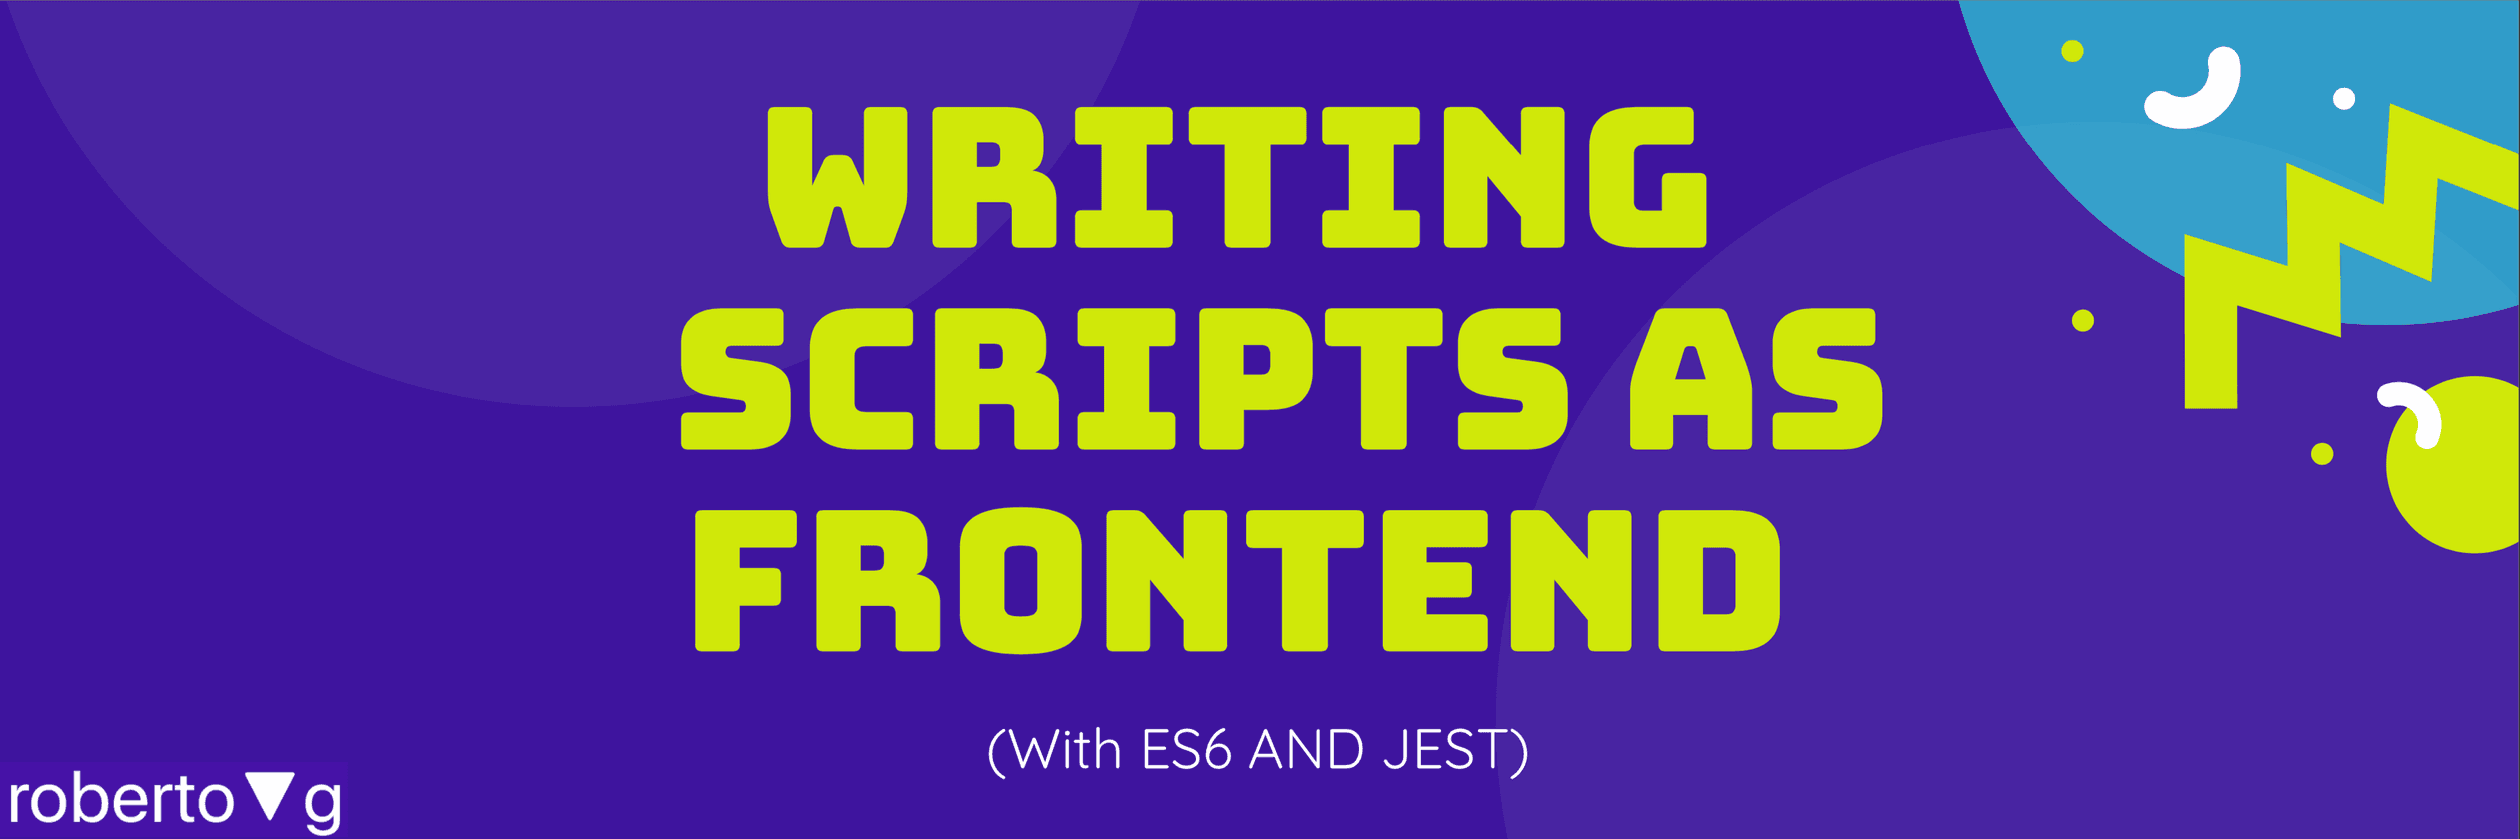 Writing Scripts As Frontend With Es6 And Jest - ITNEXT